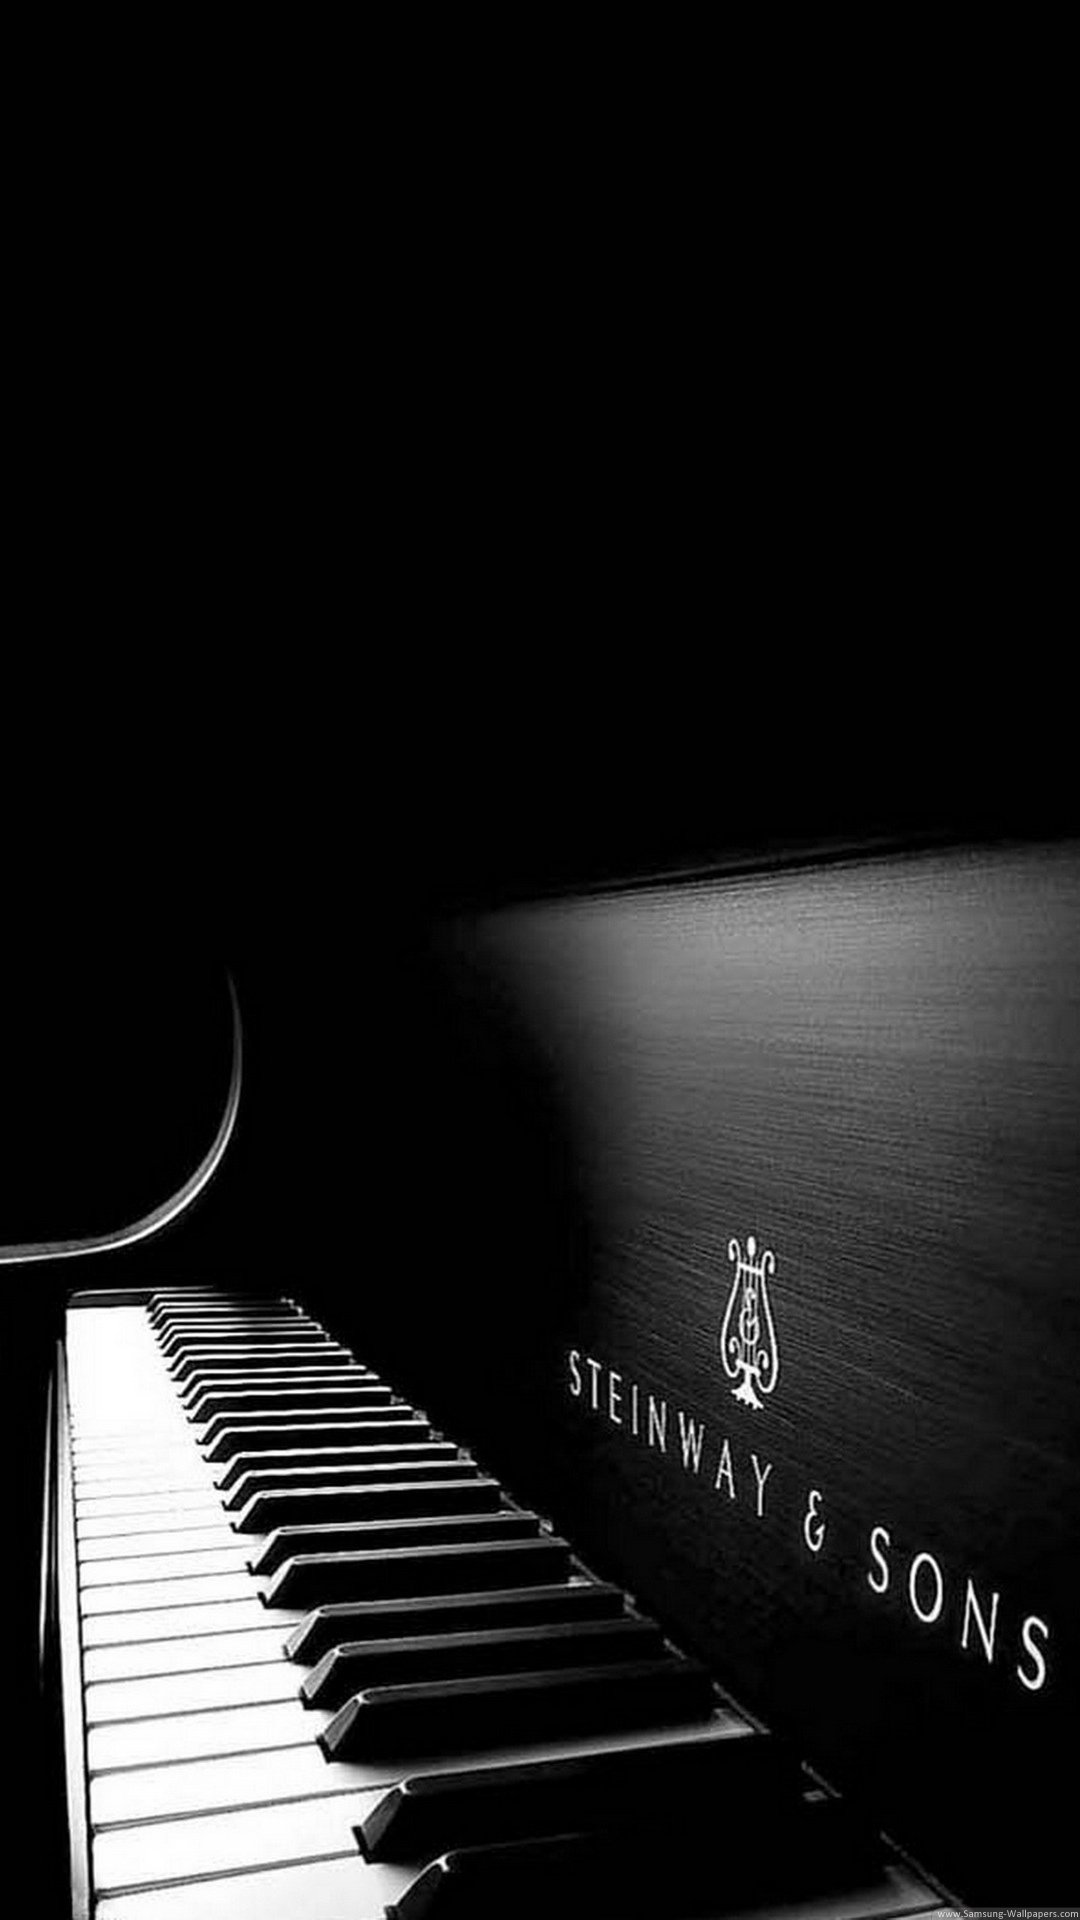 Steinway And Sons Black Piano iPhone 6 Plus HD Wallpaper HD 1080x1920